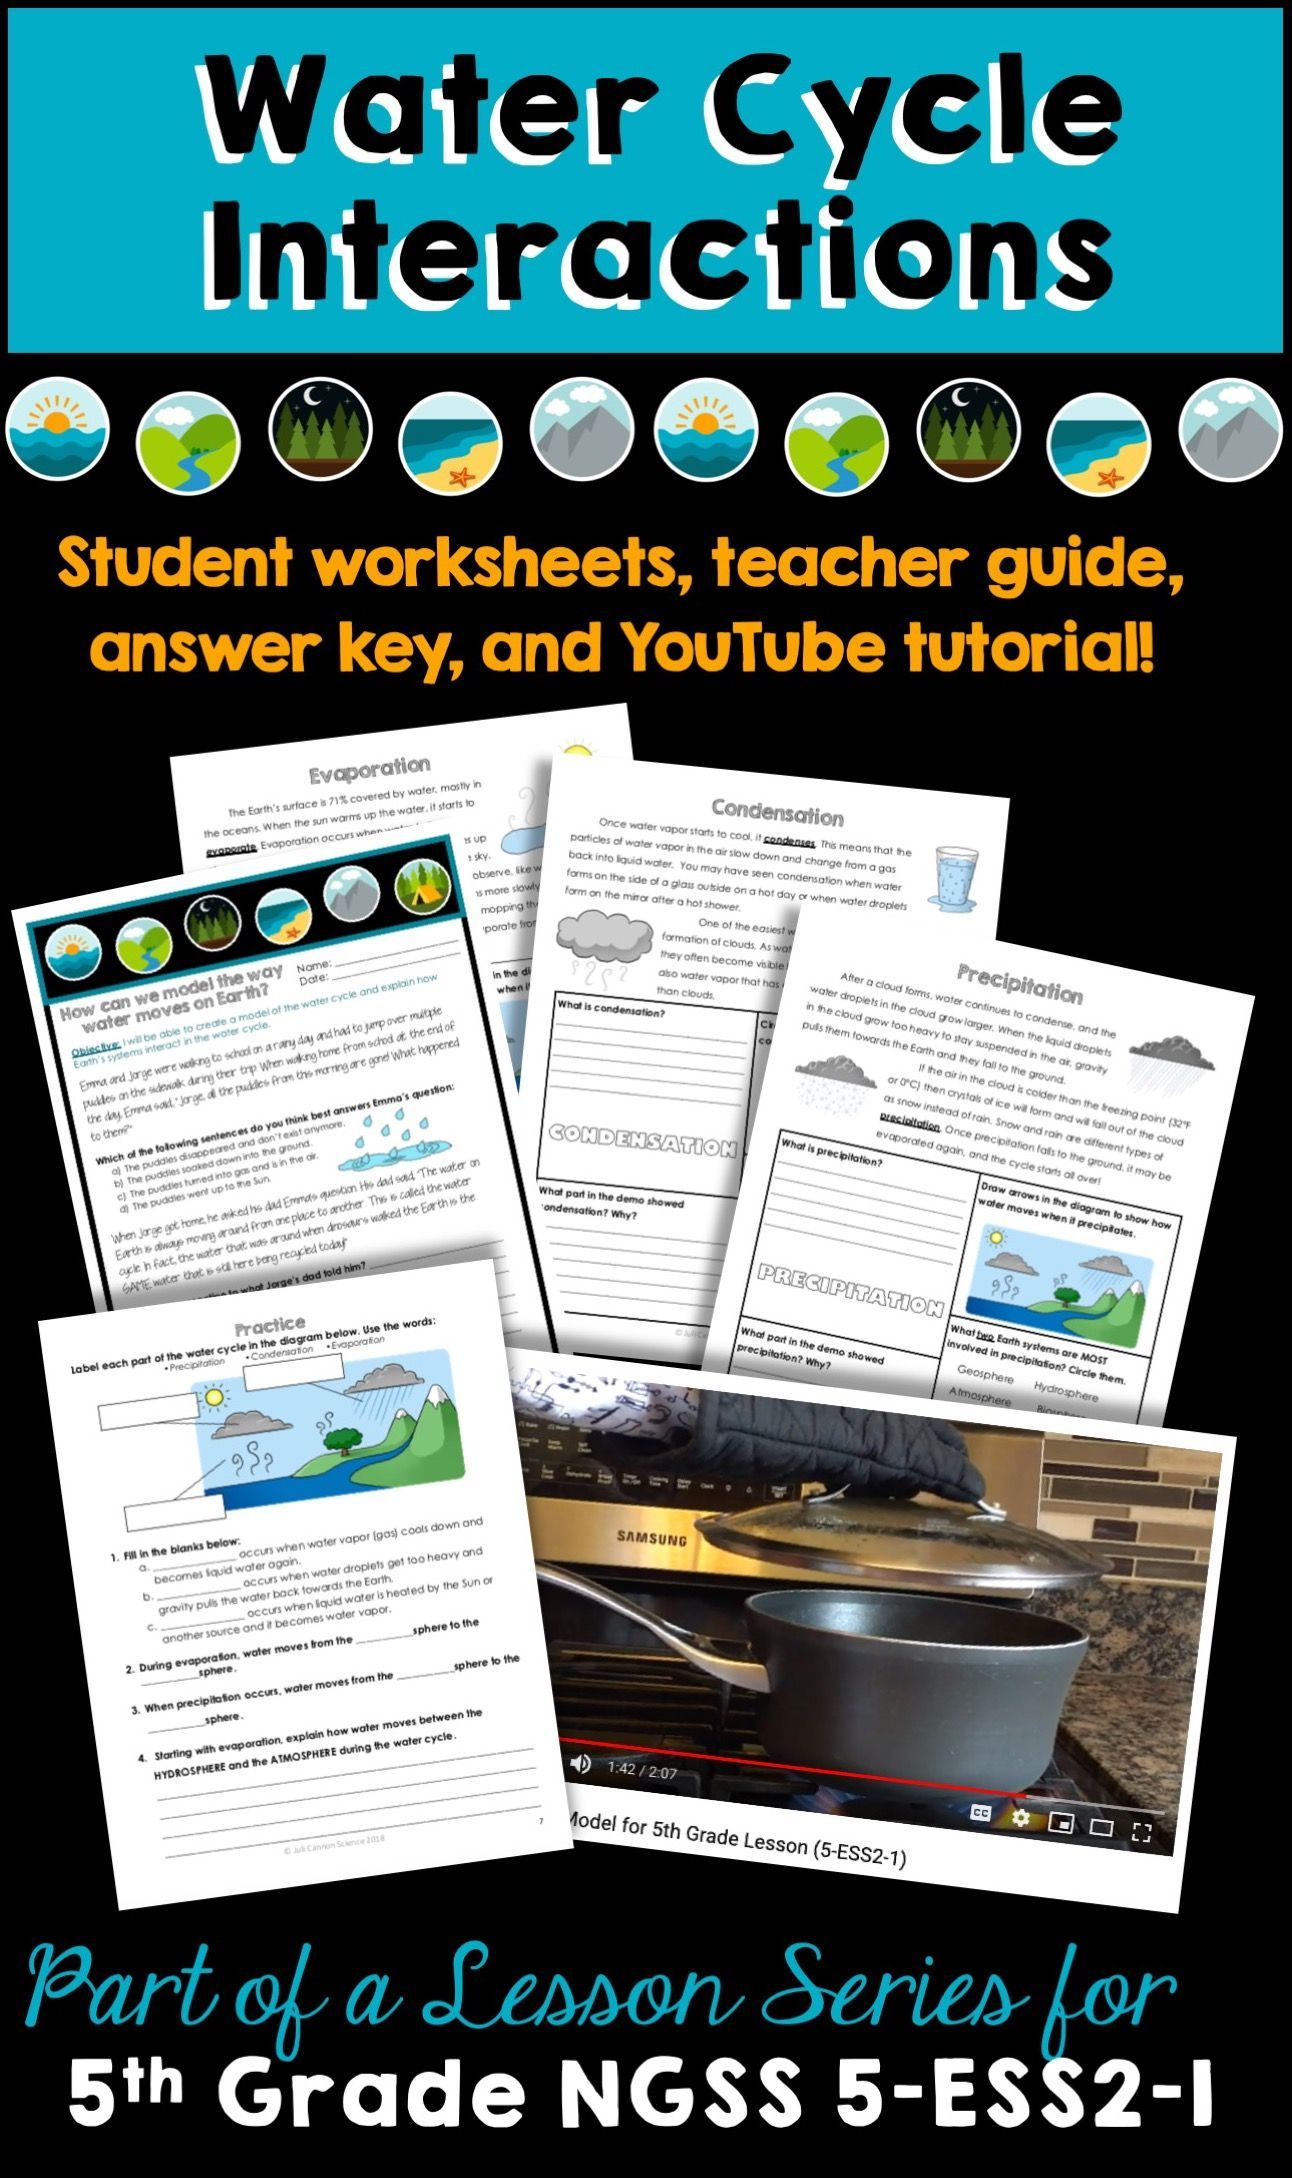 Ngss 5 Ess2 1 Water Cycle Introduction 5th Grade Ngss Teacher Guides Engaging Science Lessons